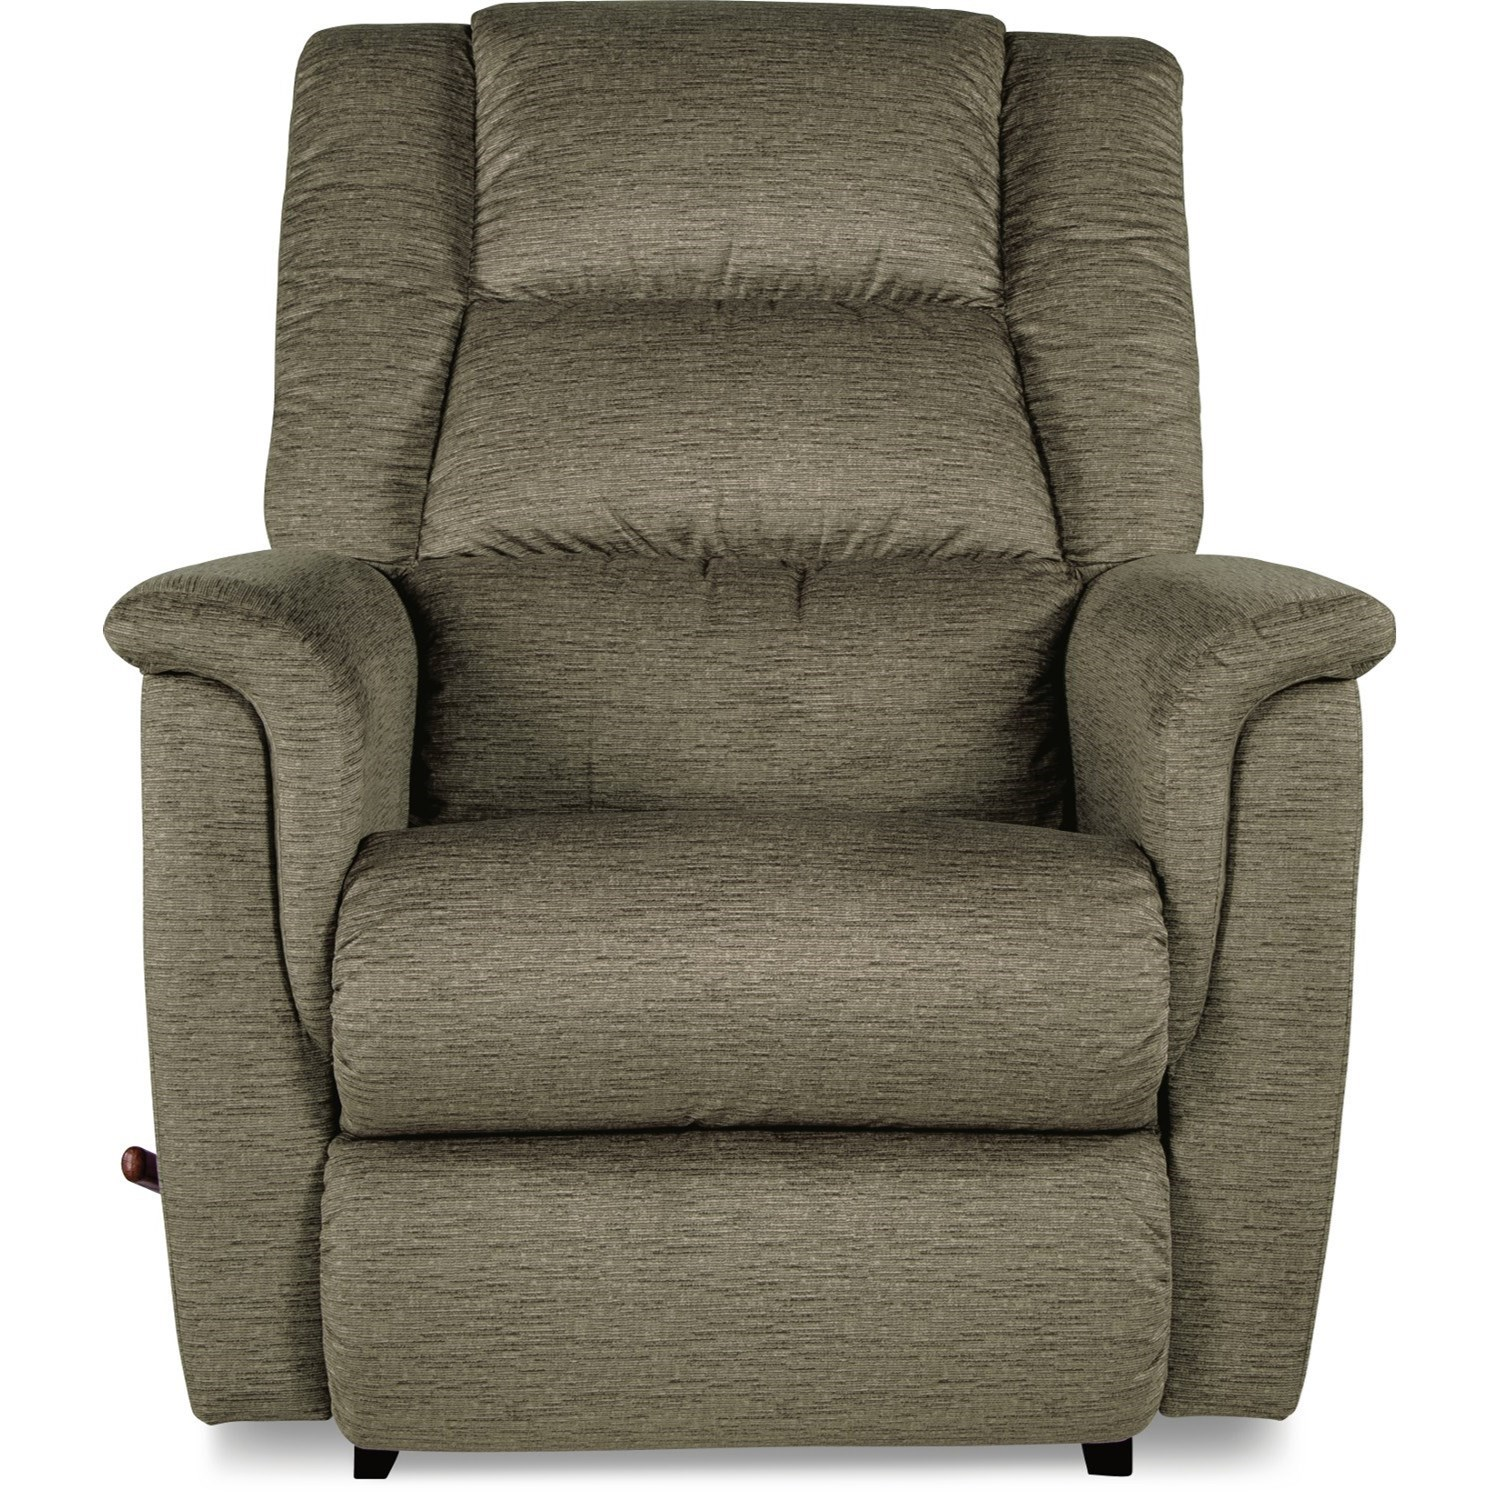 Murray Wall Saver Recliner by La-Z-Boy at Fisher Home Furnishings